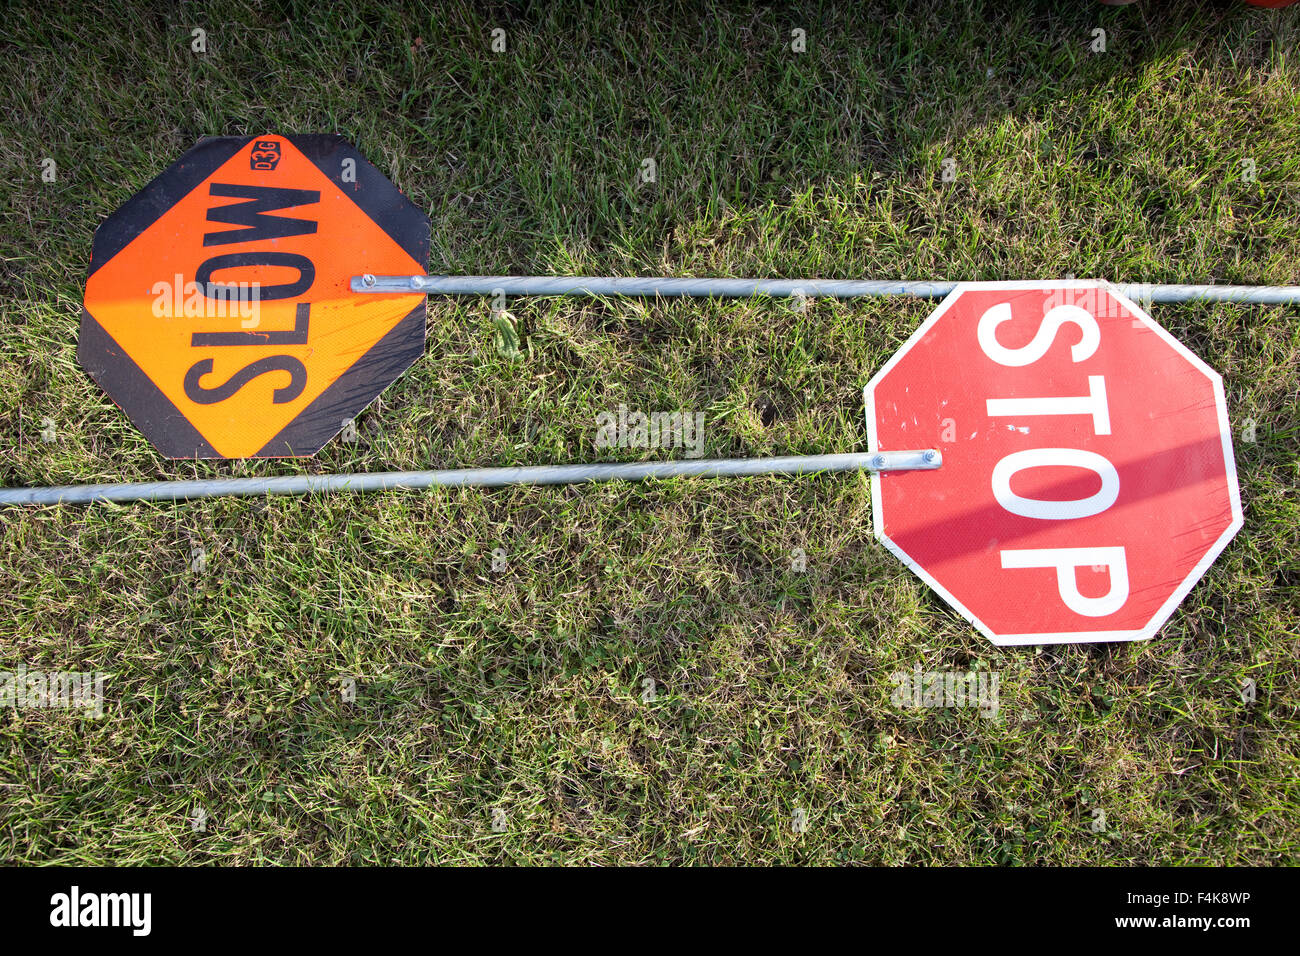 Stop and slow road construction signs lying on the grass